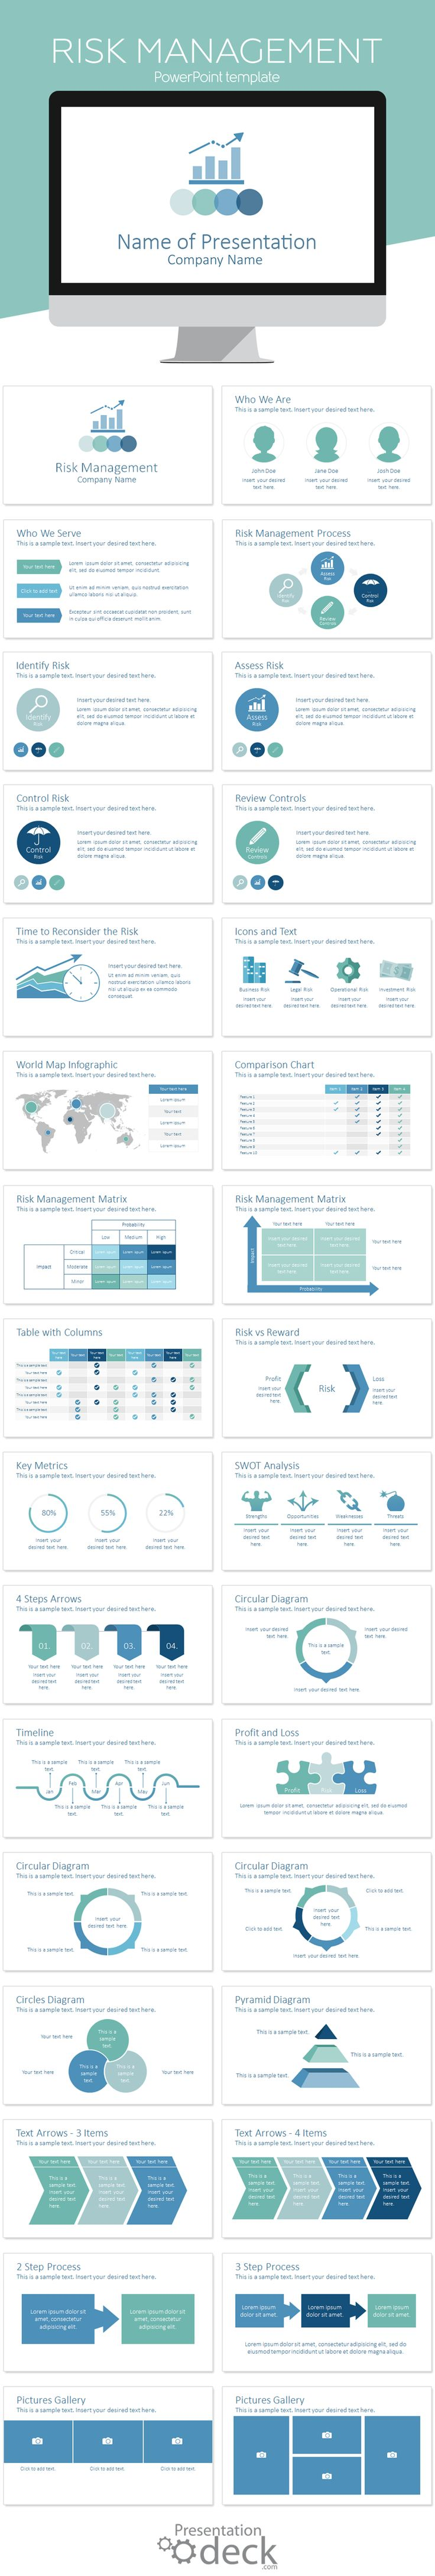 133 best powerpoint templates images on pinterest templates risk management powerpoint template toneelgroepblik Images